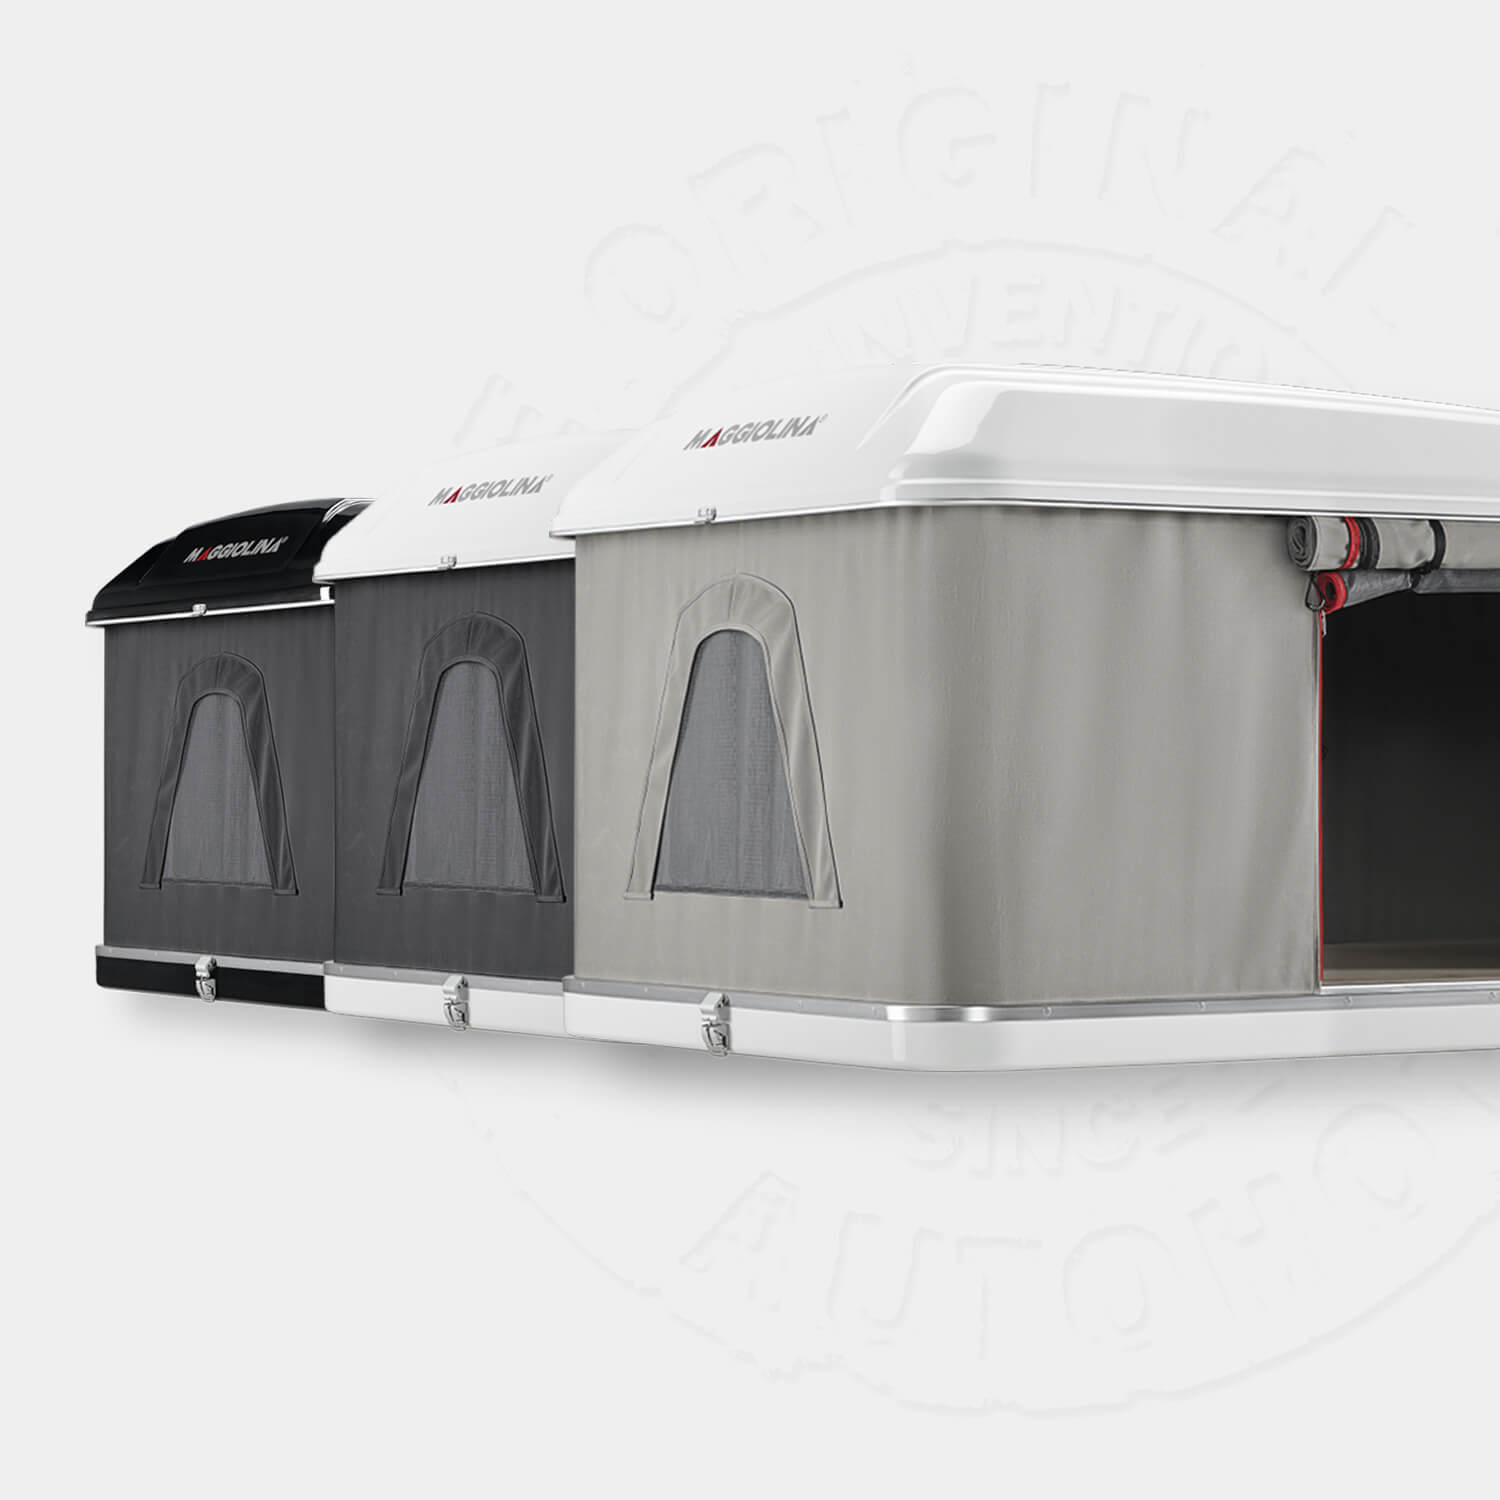 Maggiolina - Roof Top Tents by Autohome